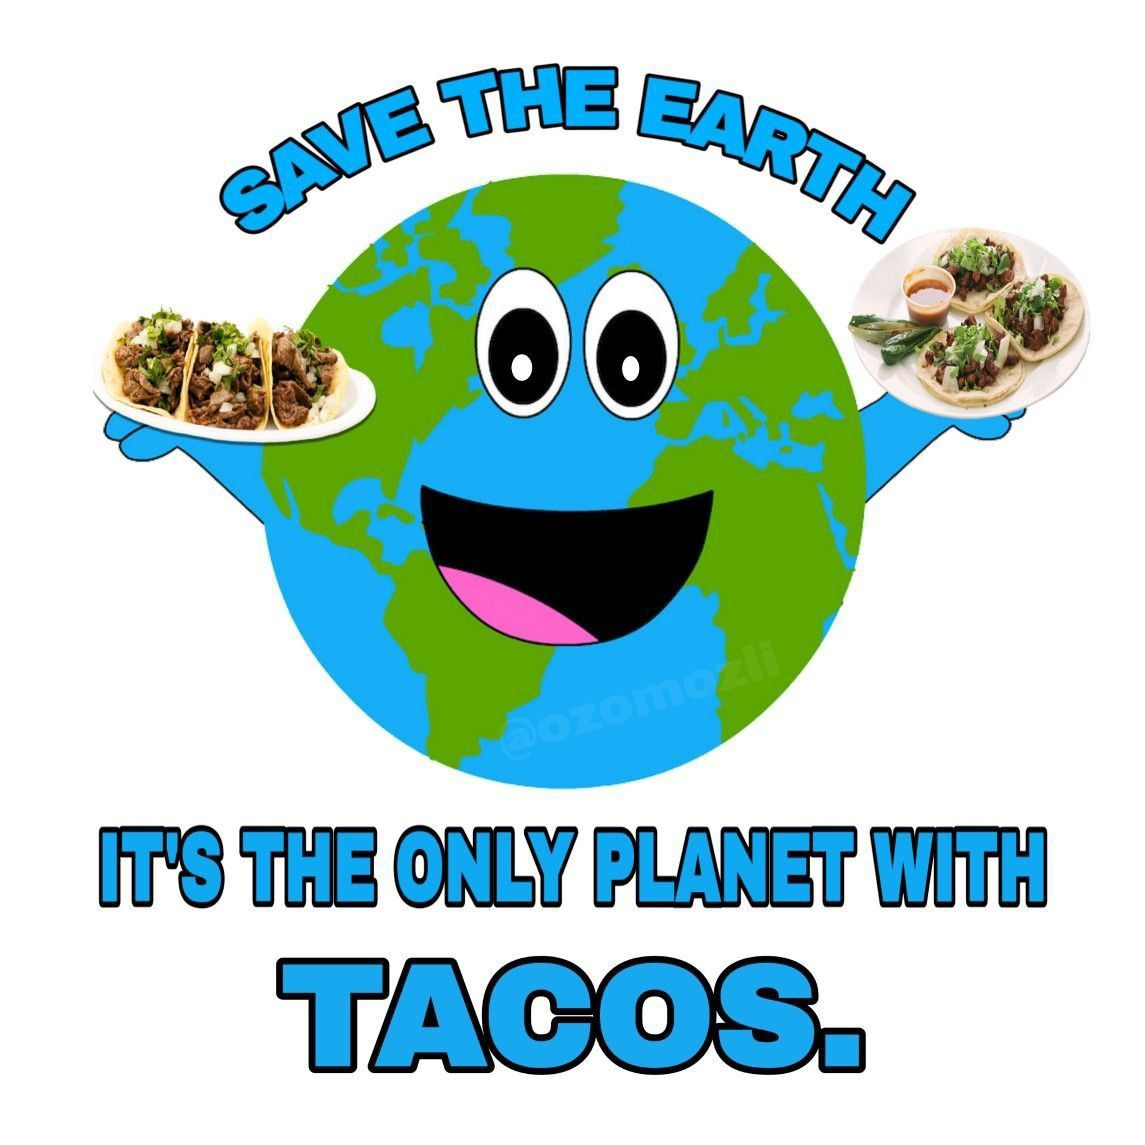 Pin by Lorri DeBerry on Because Tacos. Funny taco memes